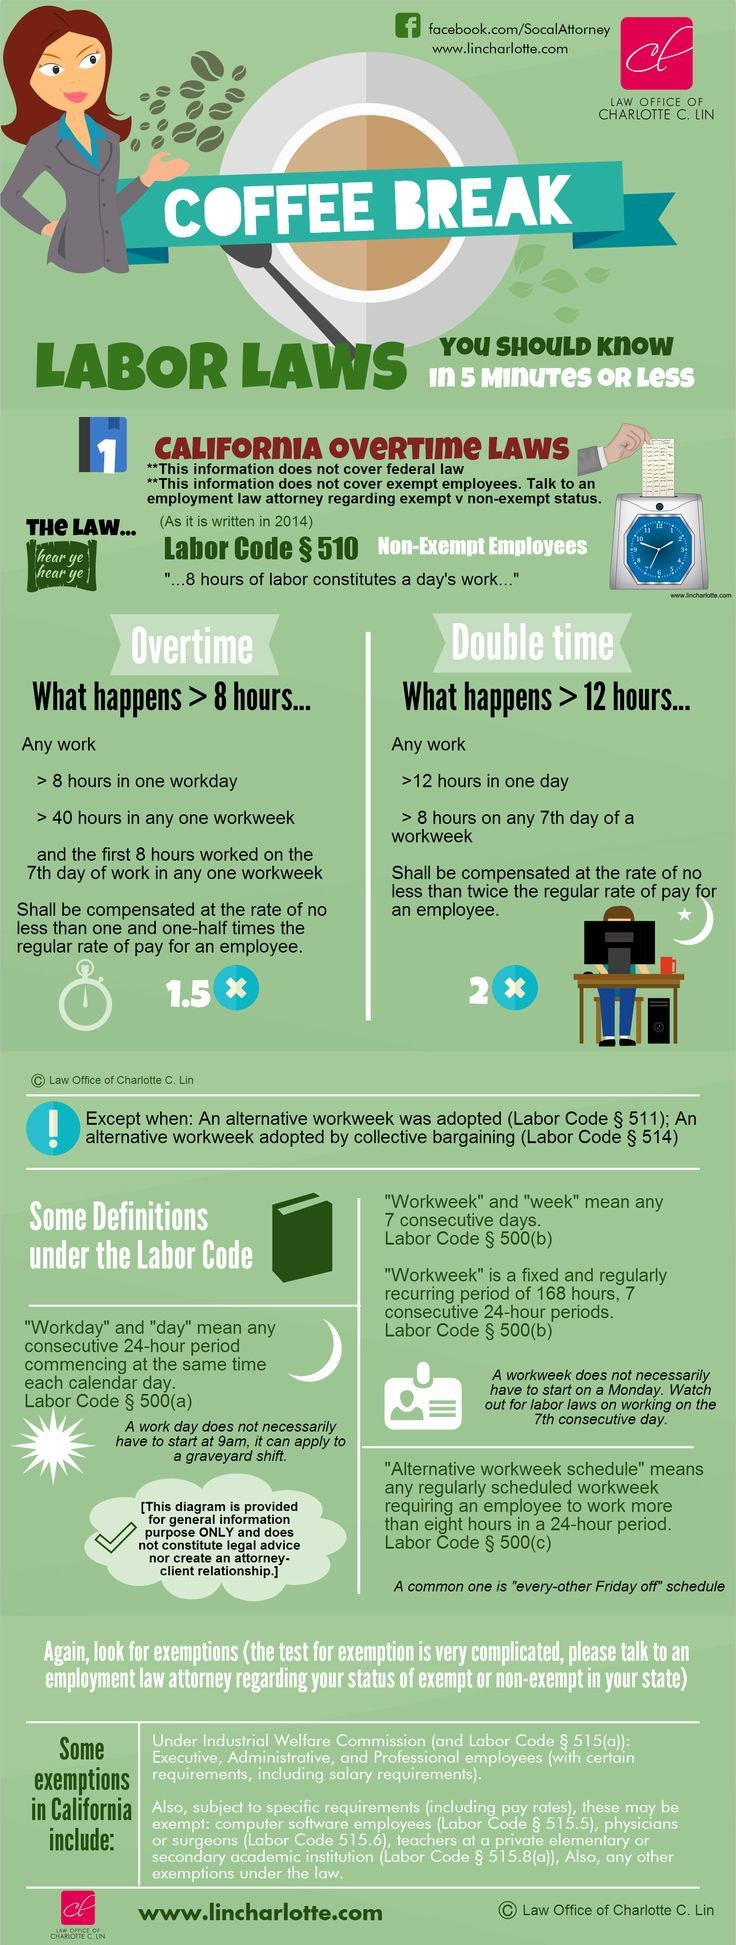 Pa labor laws for salary employees